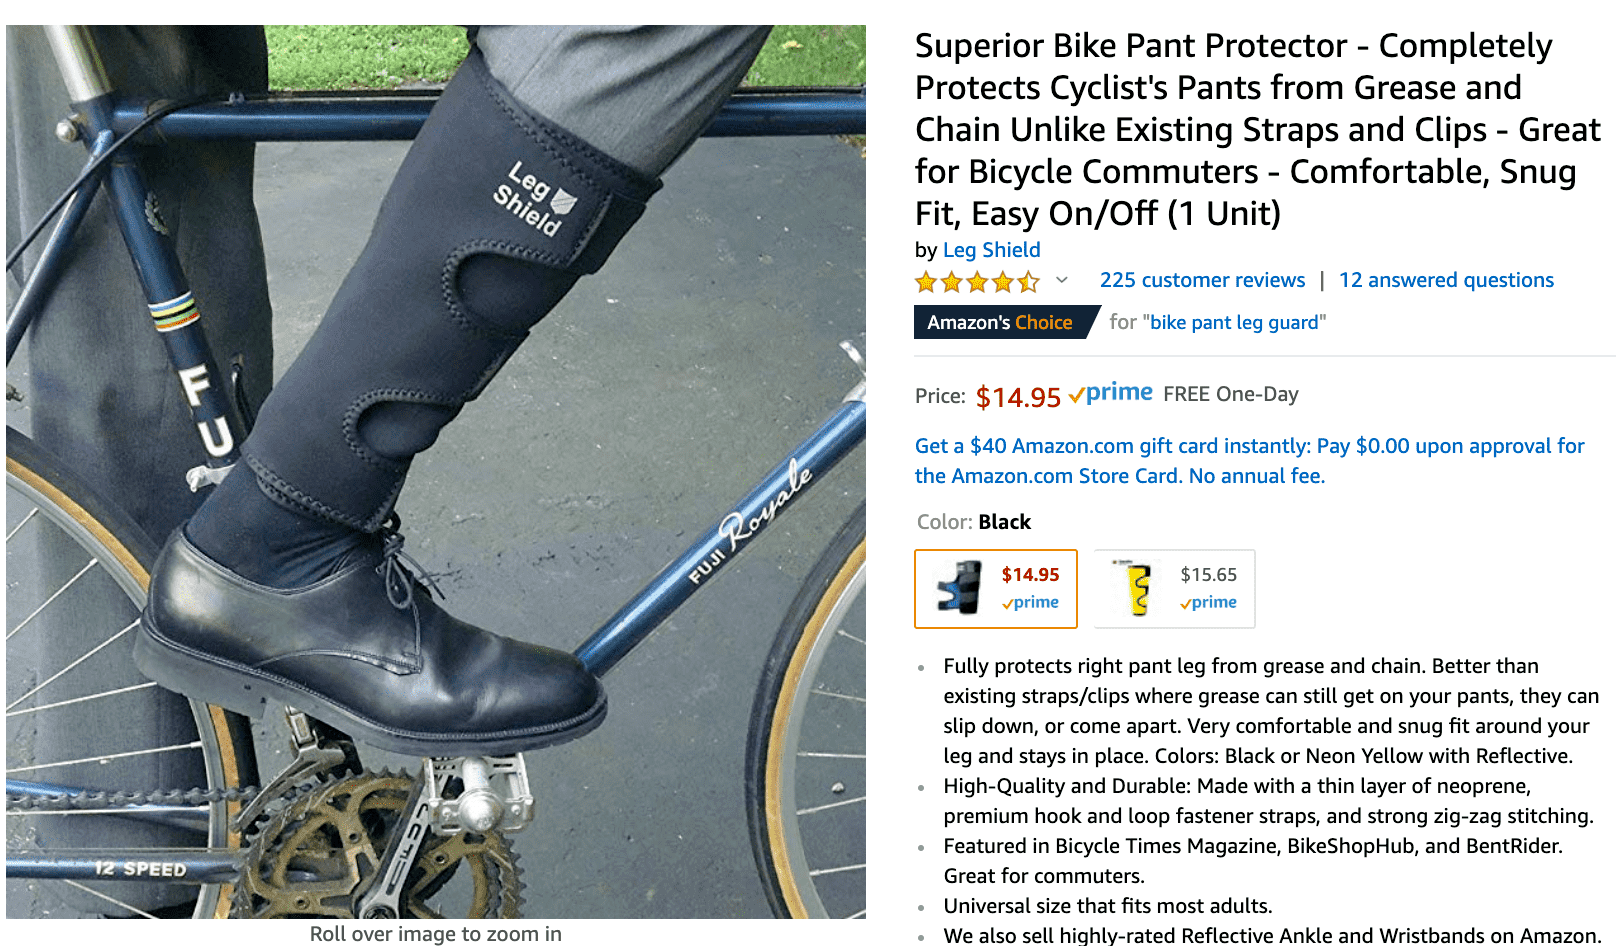 screenshot of a cycling product for sale on Amazon